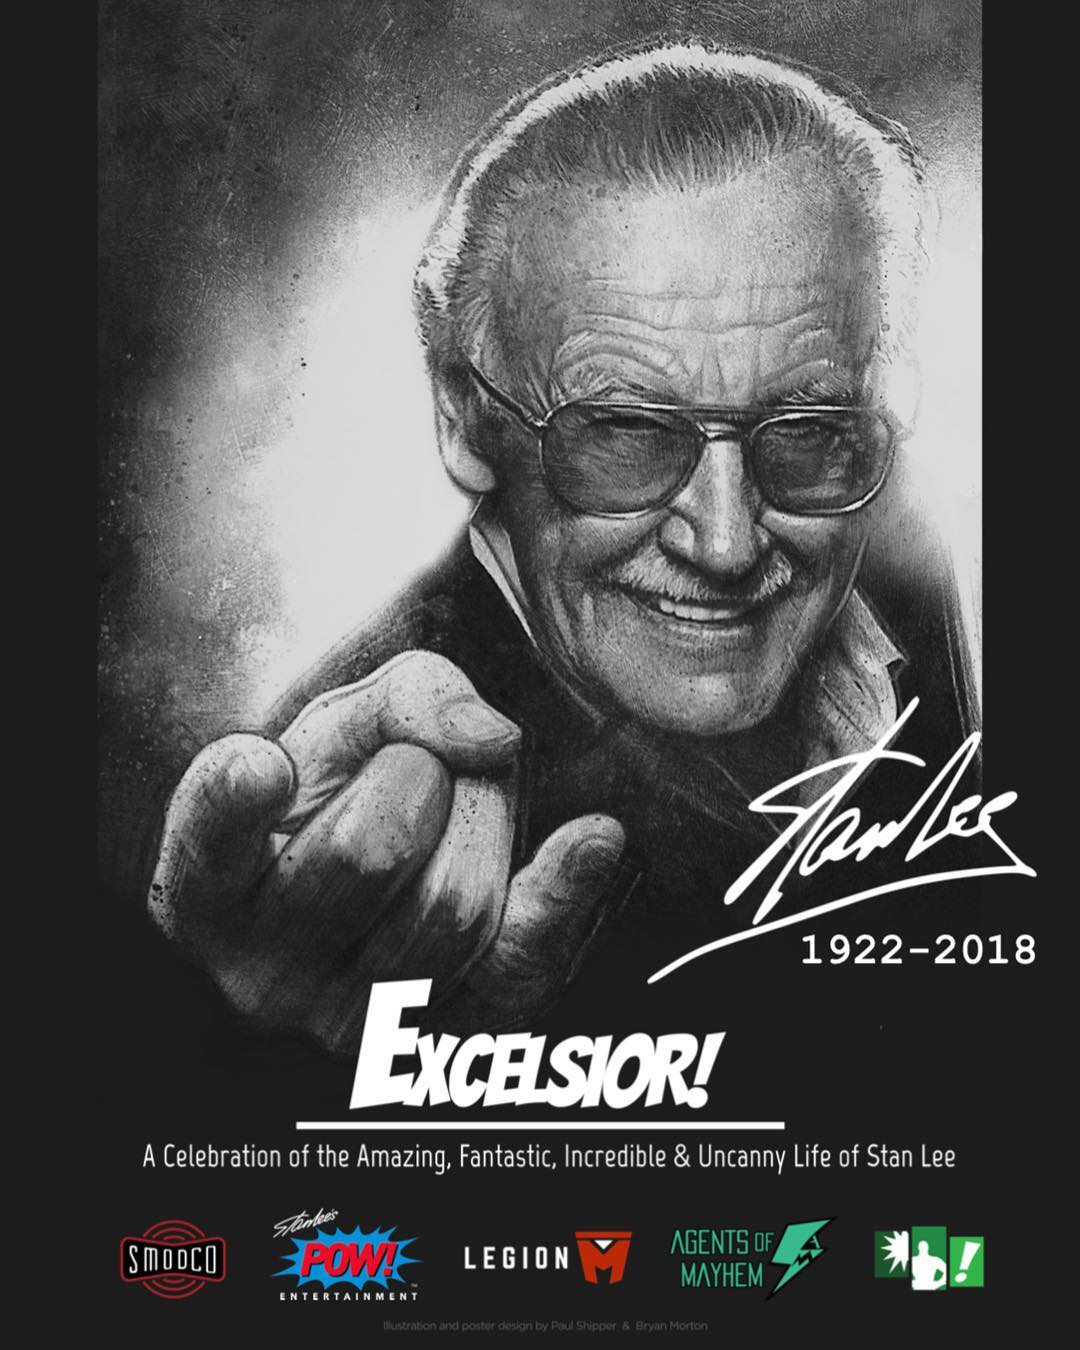 Image Credit: Instagram/therealstanlee